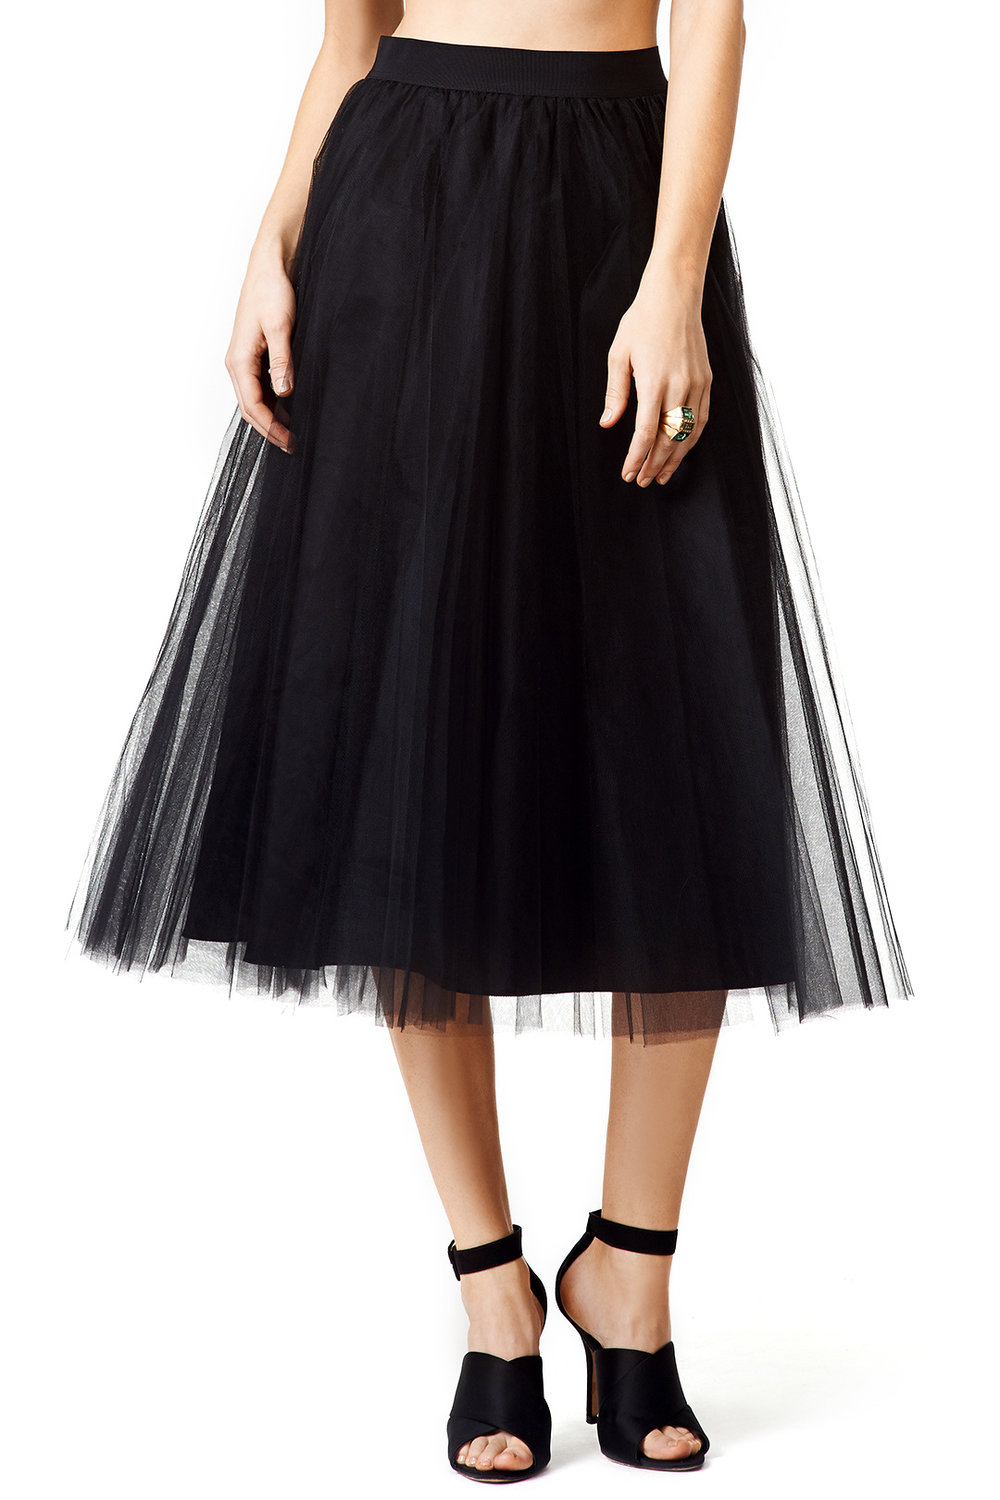 Windswept Skirt by Badgley Mishka - Why It Works: Any type of skirt or dress that offers movement is a great option for portraits. This skirt can take on a more casual or formal vibe depending on what top it's paired with and how it's accessorized.